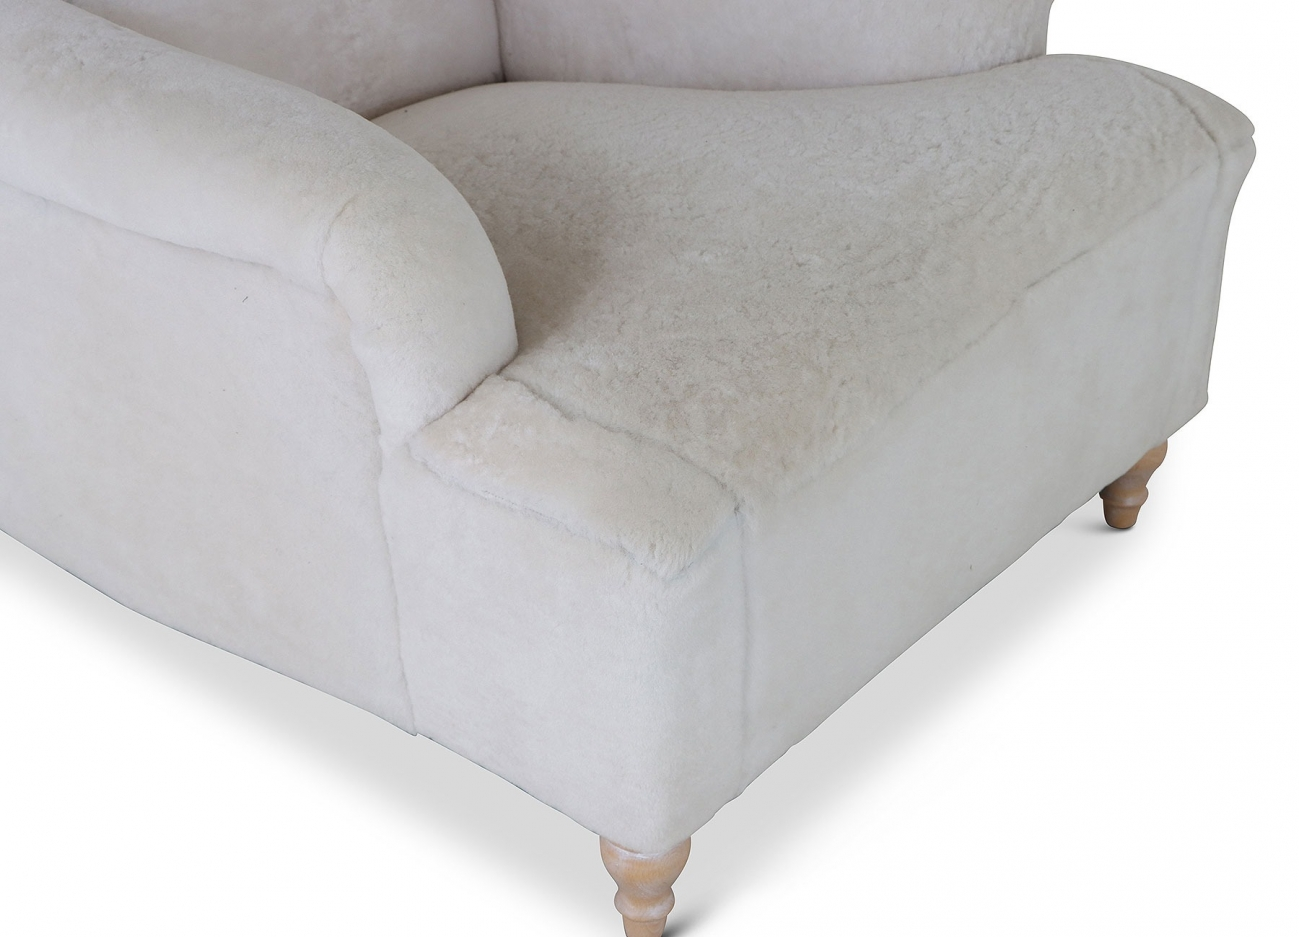 Milton 1930s style easy chair in sheepskin wool